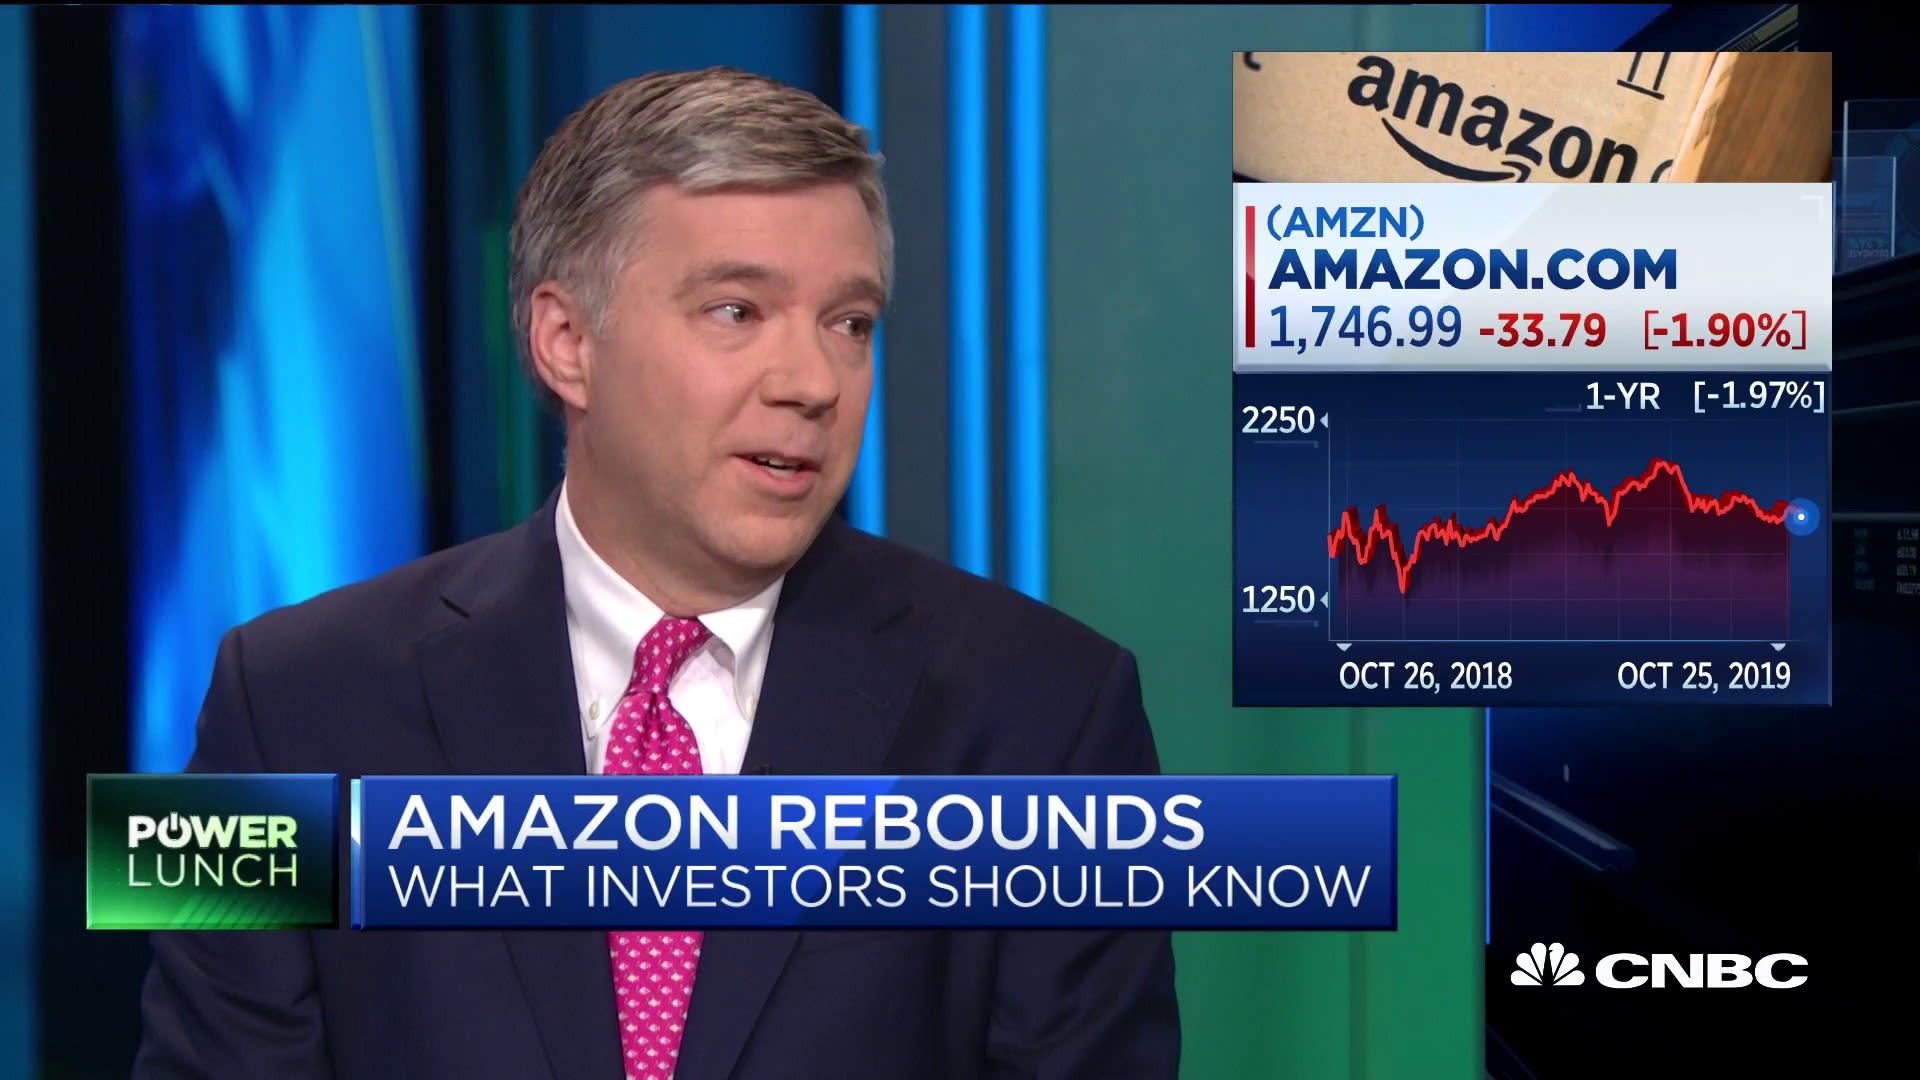 Amazon's same-day shipping push should help advertising business take off: Evercore's Greg Melich